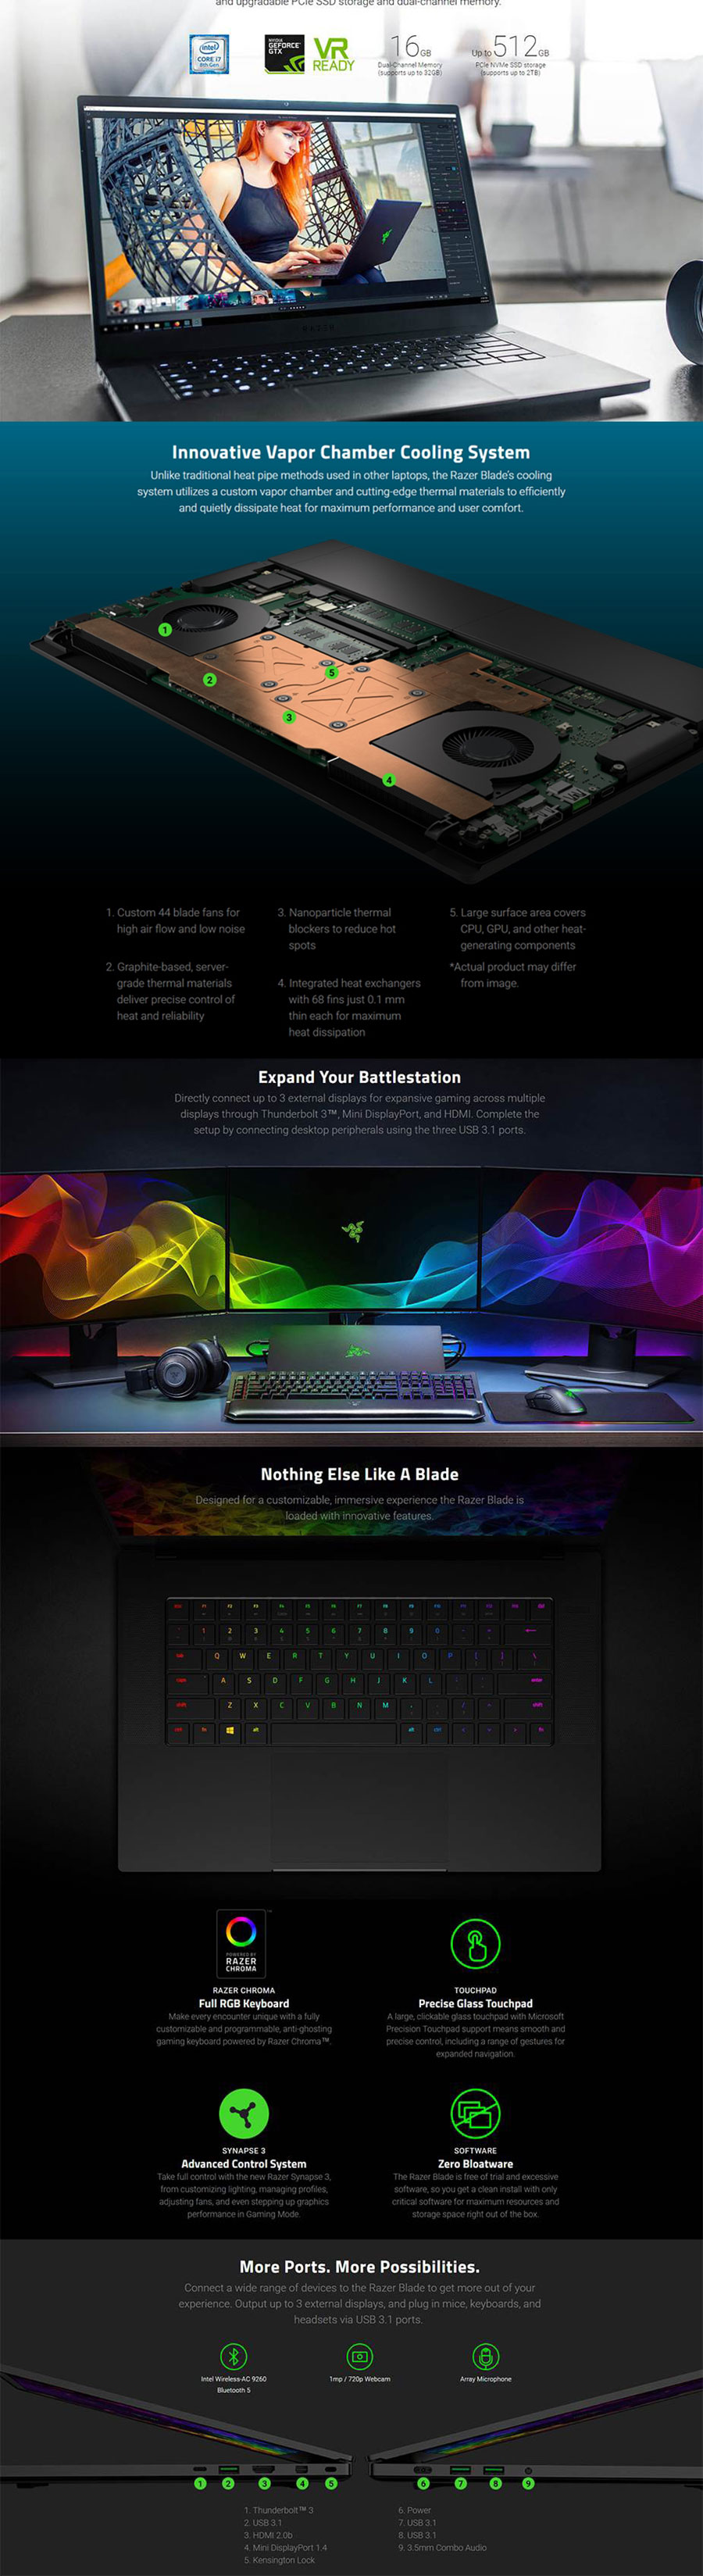 Razer Blade 15 6in FHD 144Hz i7 8750H GTX 1070 512G SSD Gaming Laptop  (RZ09-02386E92-R3B1)